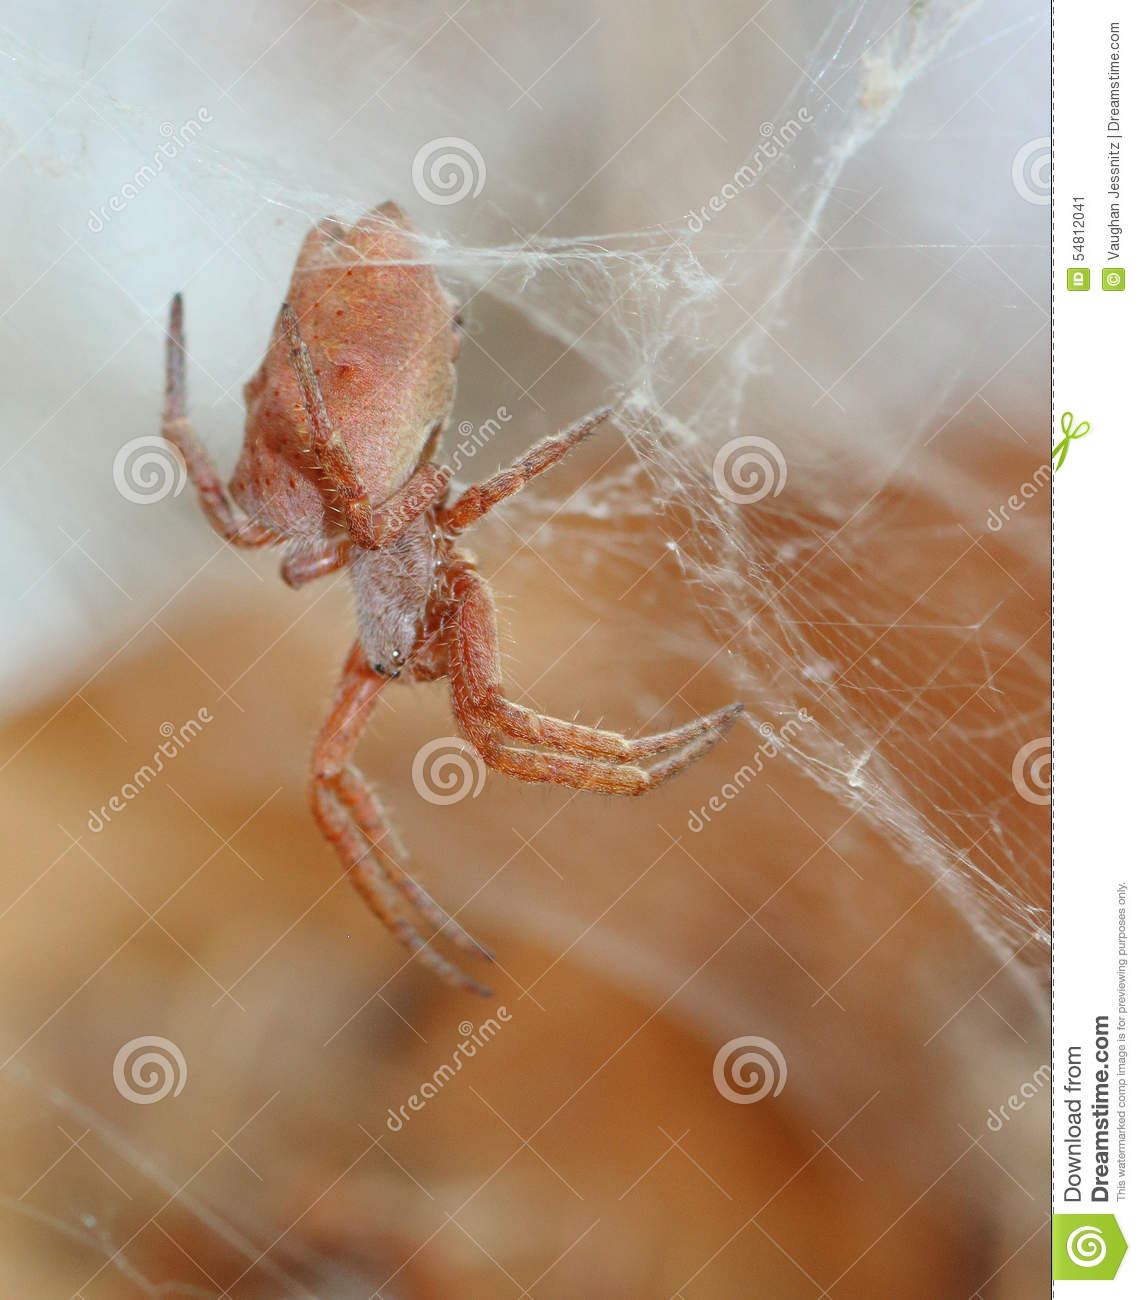 african spider stock image image of little animals 54812041